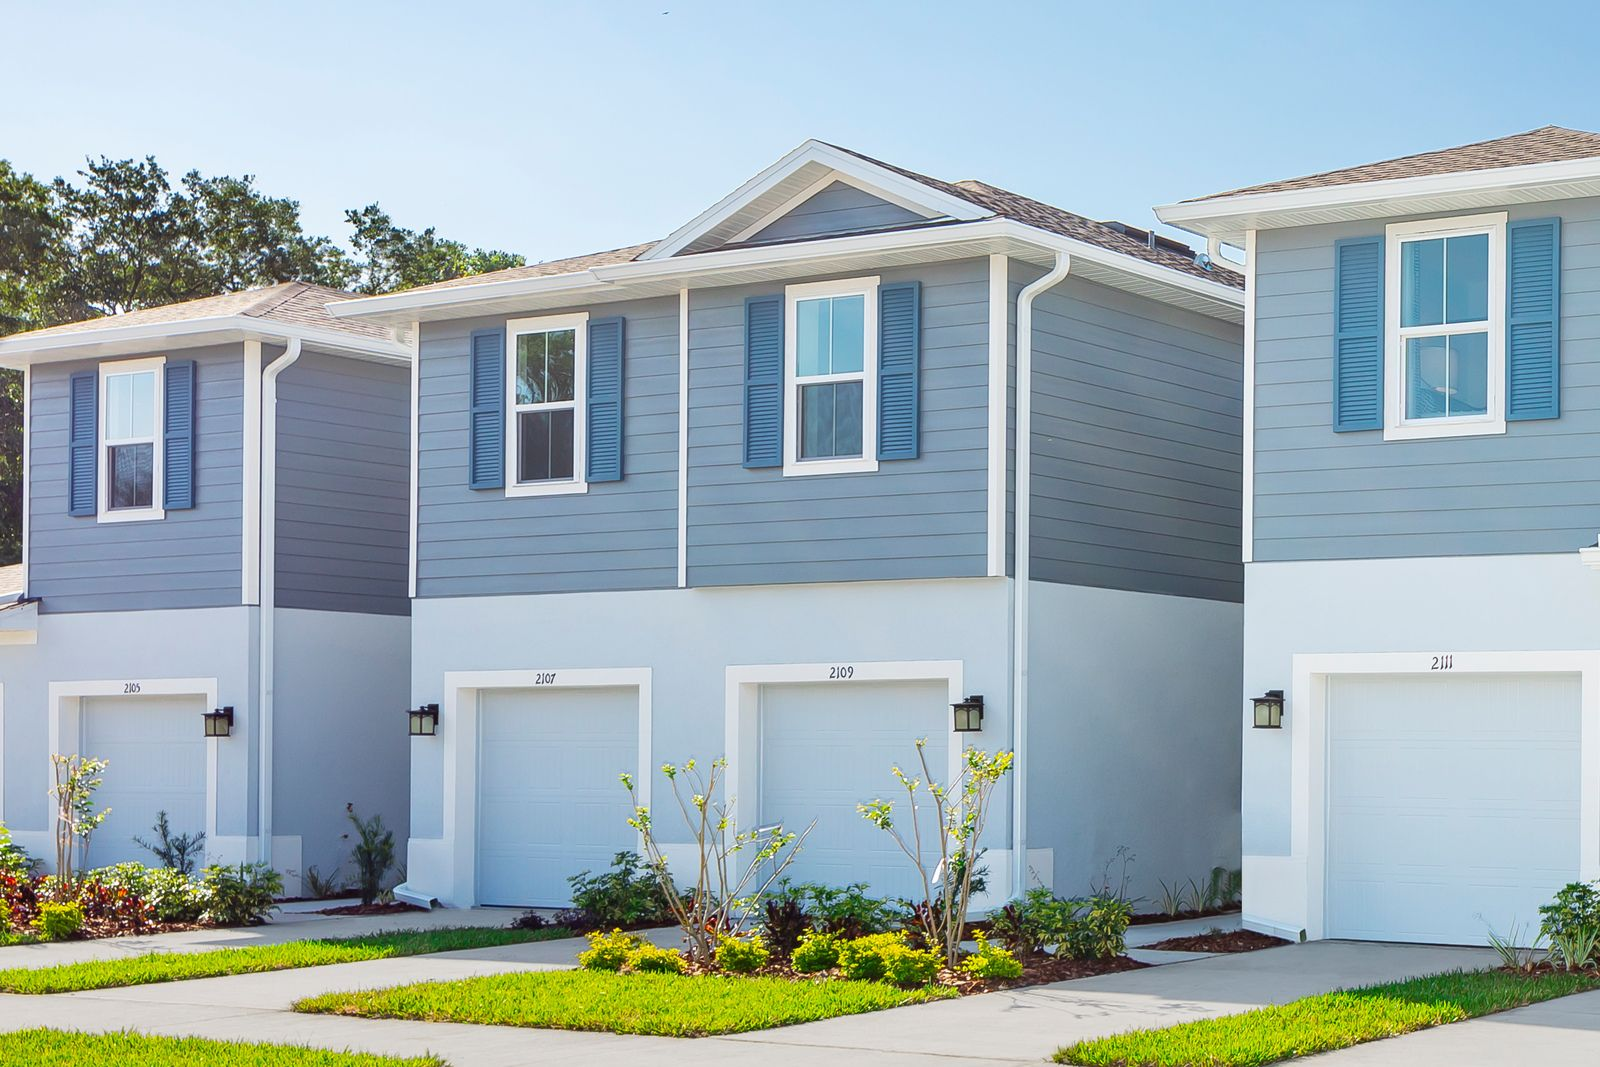 Welcome to Magnolia Grove in Davenport, FL:Come home to Davenport's new boutique townhome community! Enjoy Florida sunshine all year long while living close to all of the attractions. From the Low $200s. Join our VIP List today!